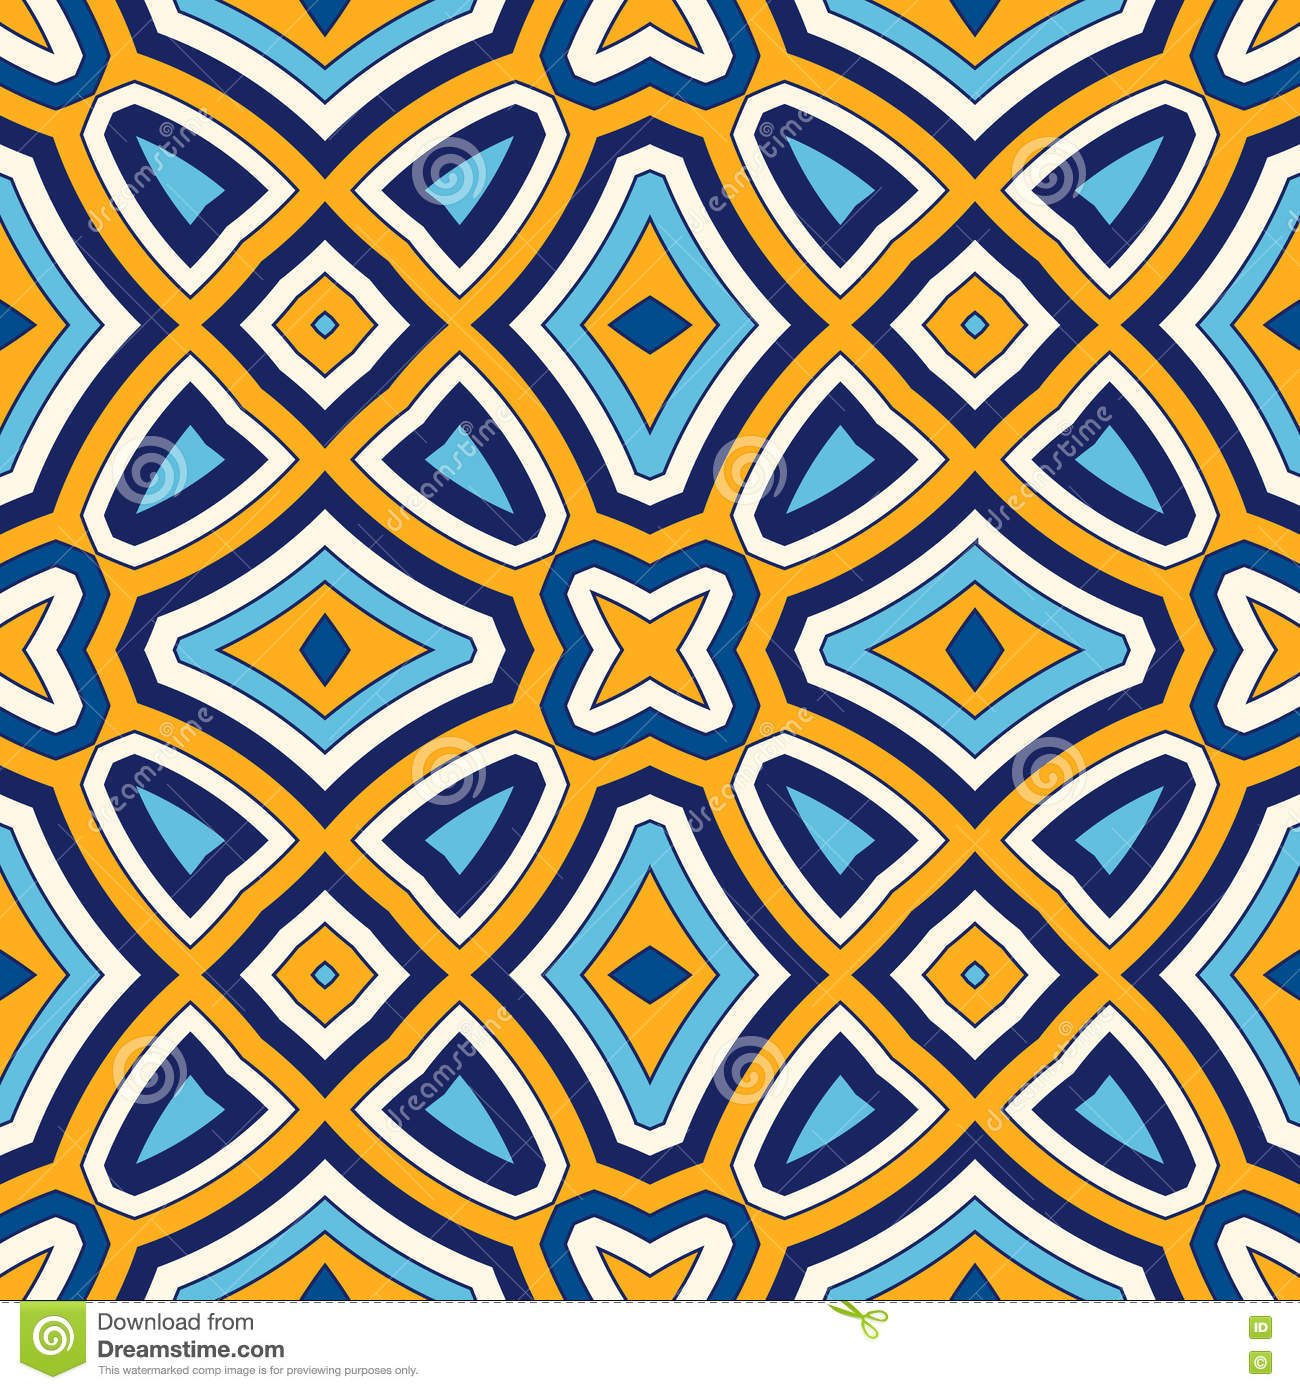 Abstract Ethnic Seamless Geometric Pattern Vector